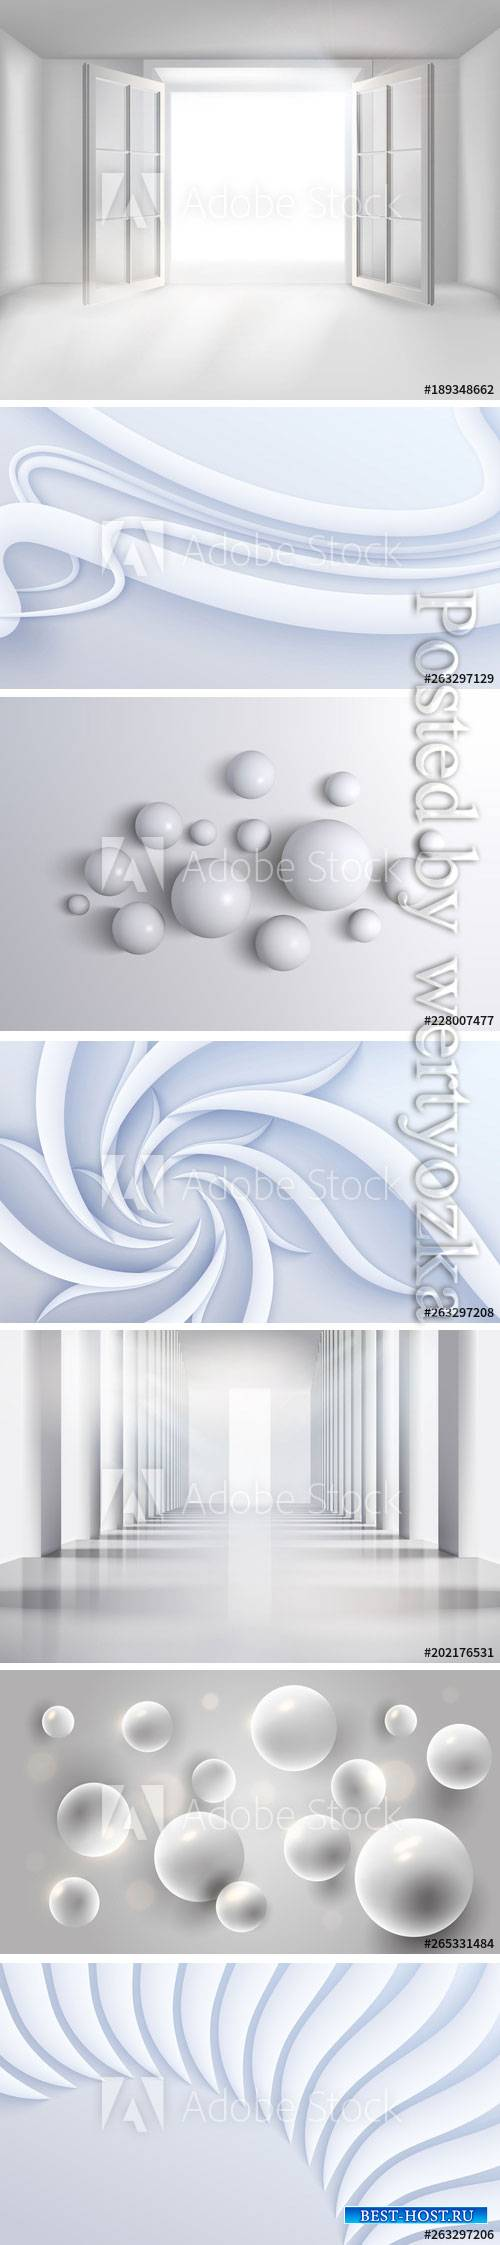 White abstract backgrounds with 3D effect